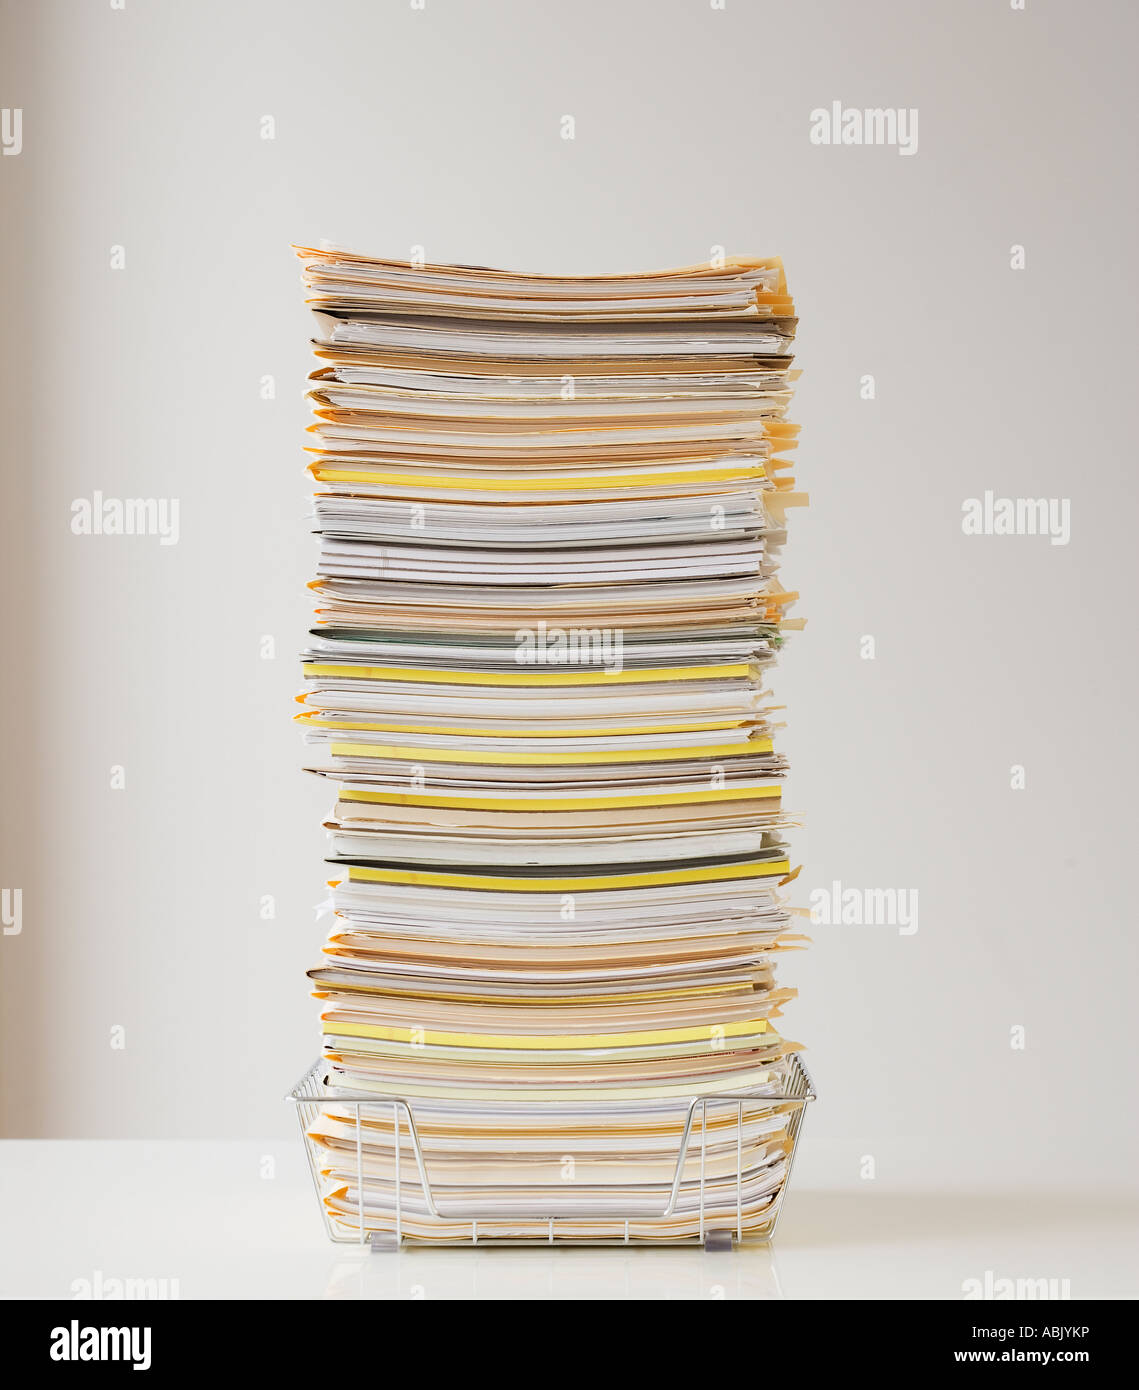 Large stack of paperwork in wire basket Stock Photo: 12910809 - Alamy